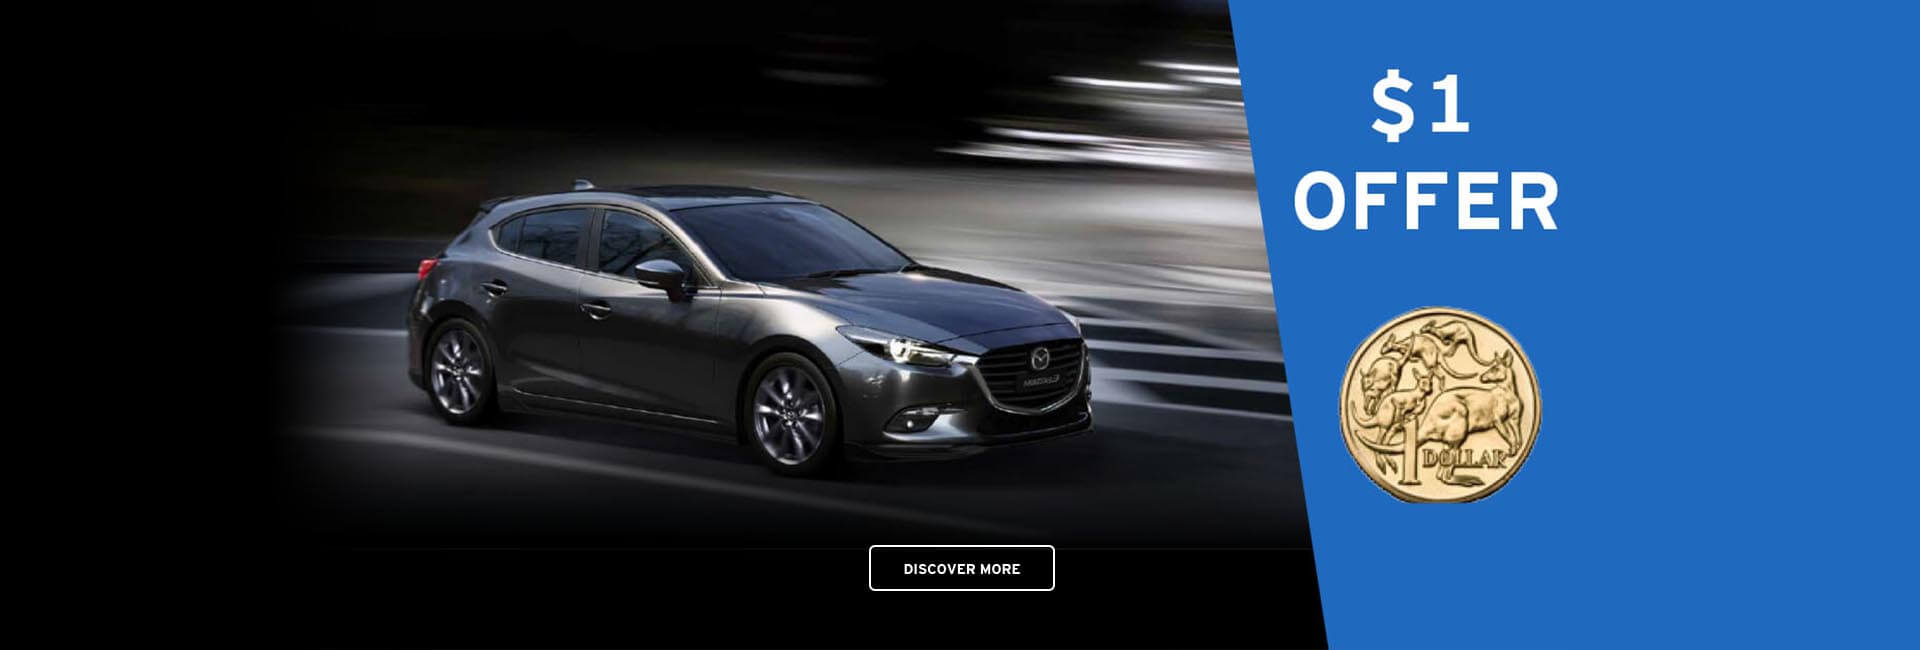 THE MAZDA 3 RUNOUT IS NOW ON AT LISMORE MAZDA PLUS $1 OFFER!